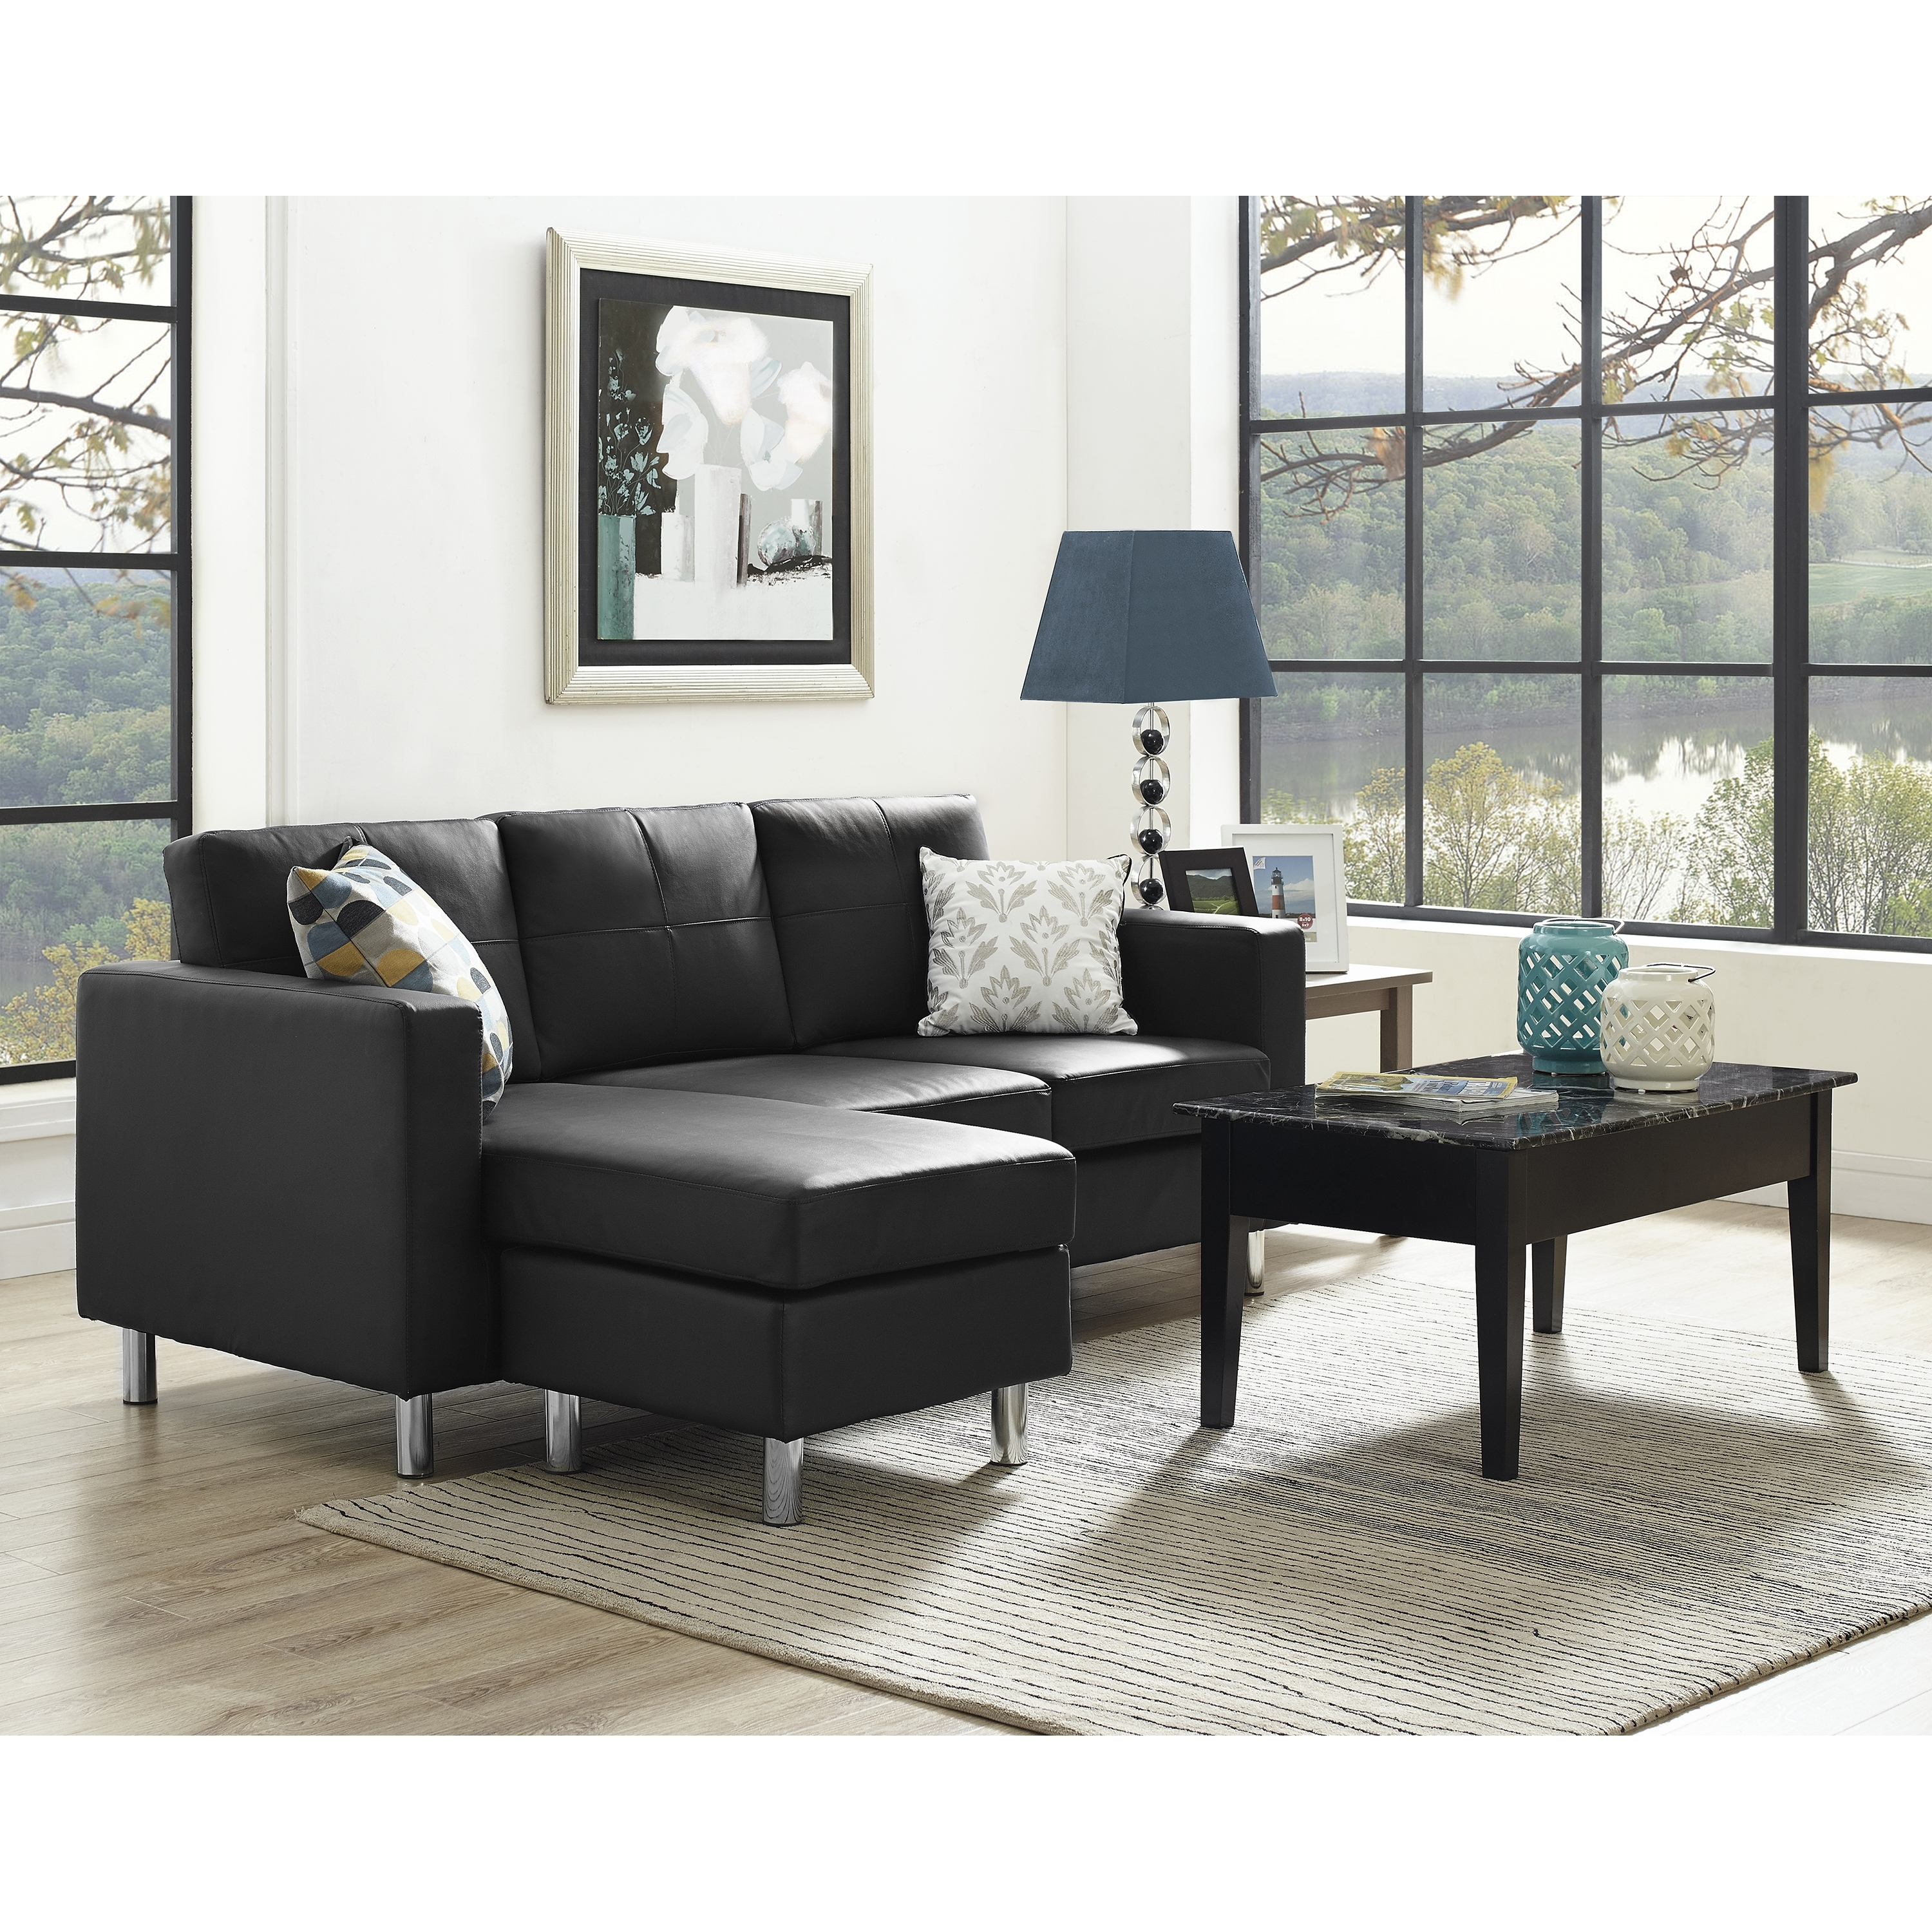 Best Sears Sectional Sofa 79 In Costco Leather Sectional Sofa With Within Sears Sectional Sofas (Image 2 of 10)